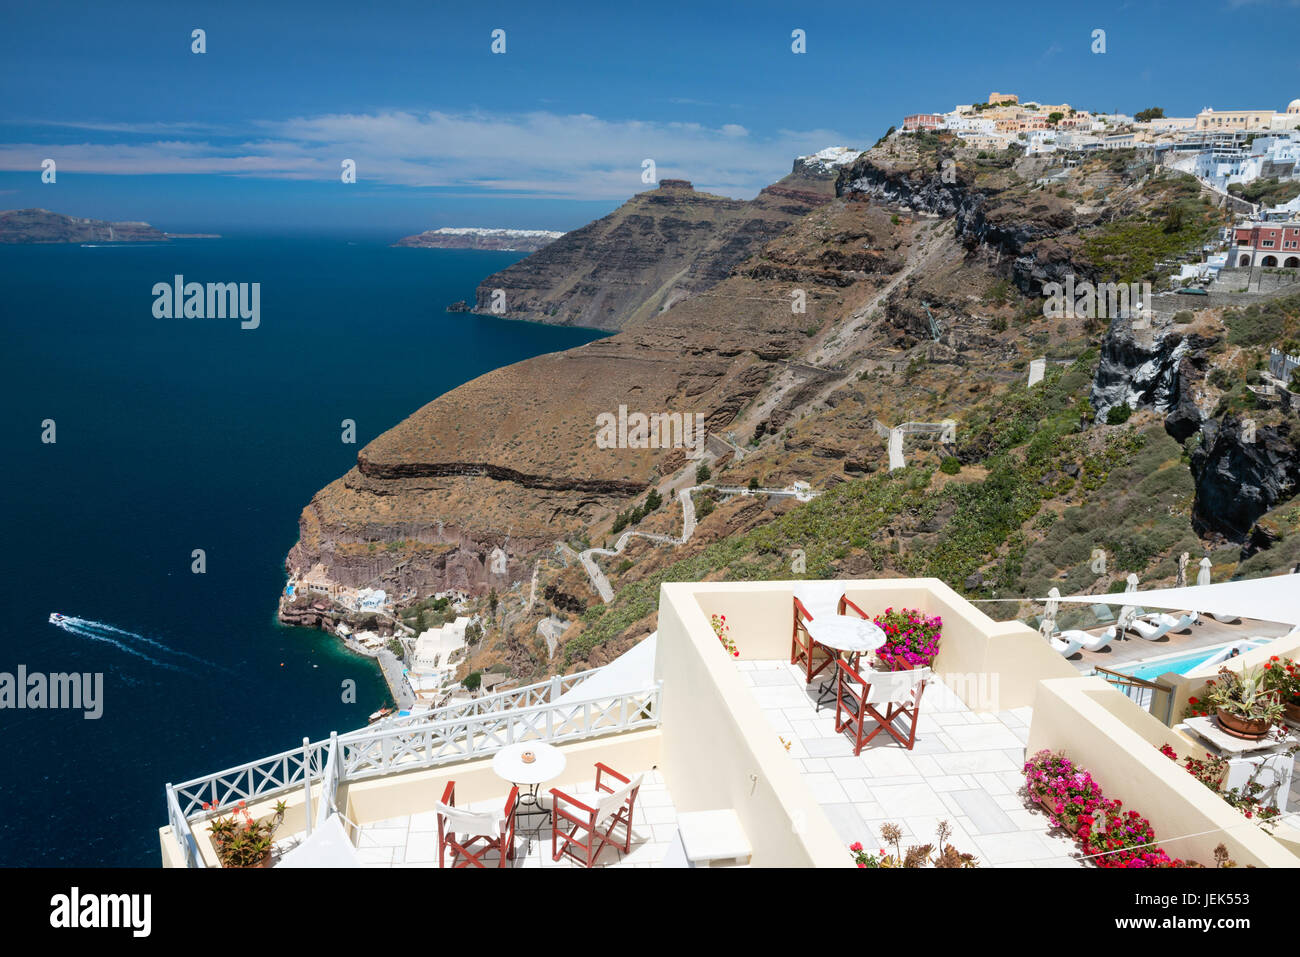 White cupola of church with Aegean sea and volcanic island in background, Santorini, Greece - Stock Image